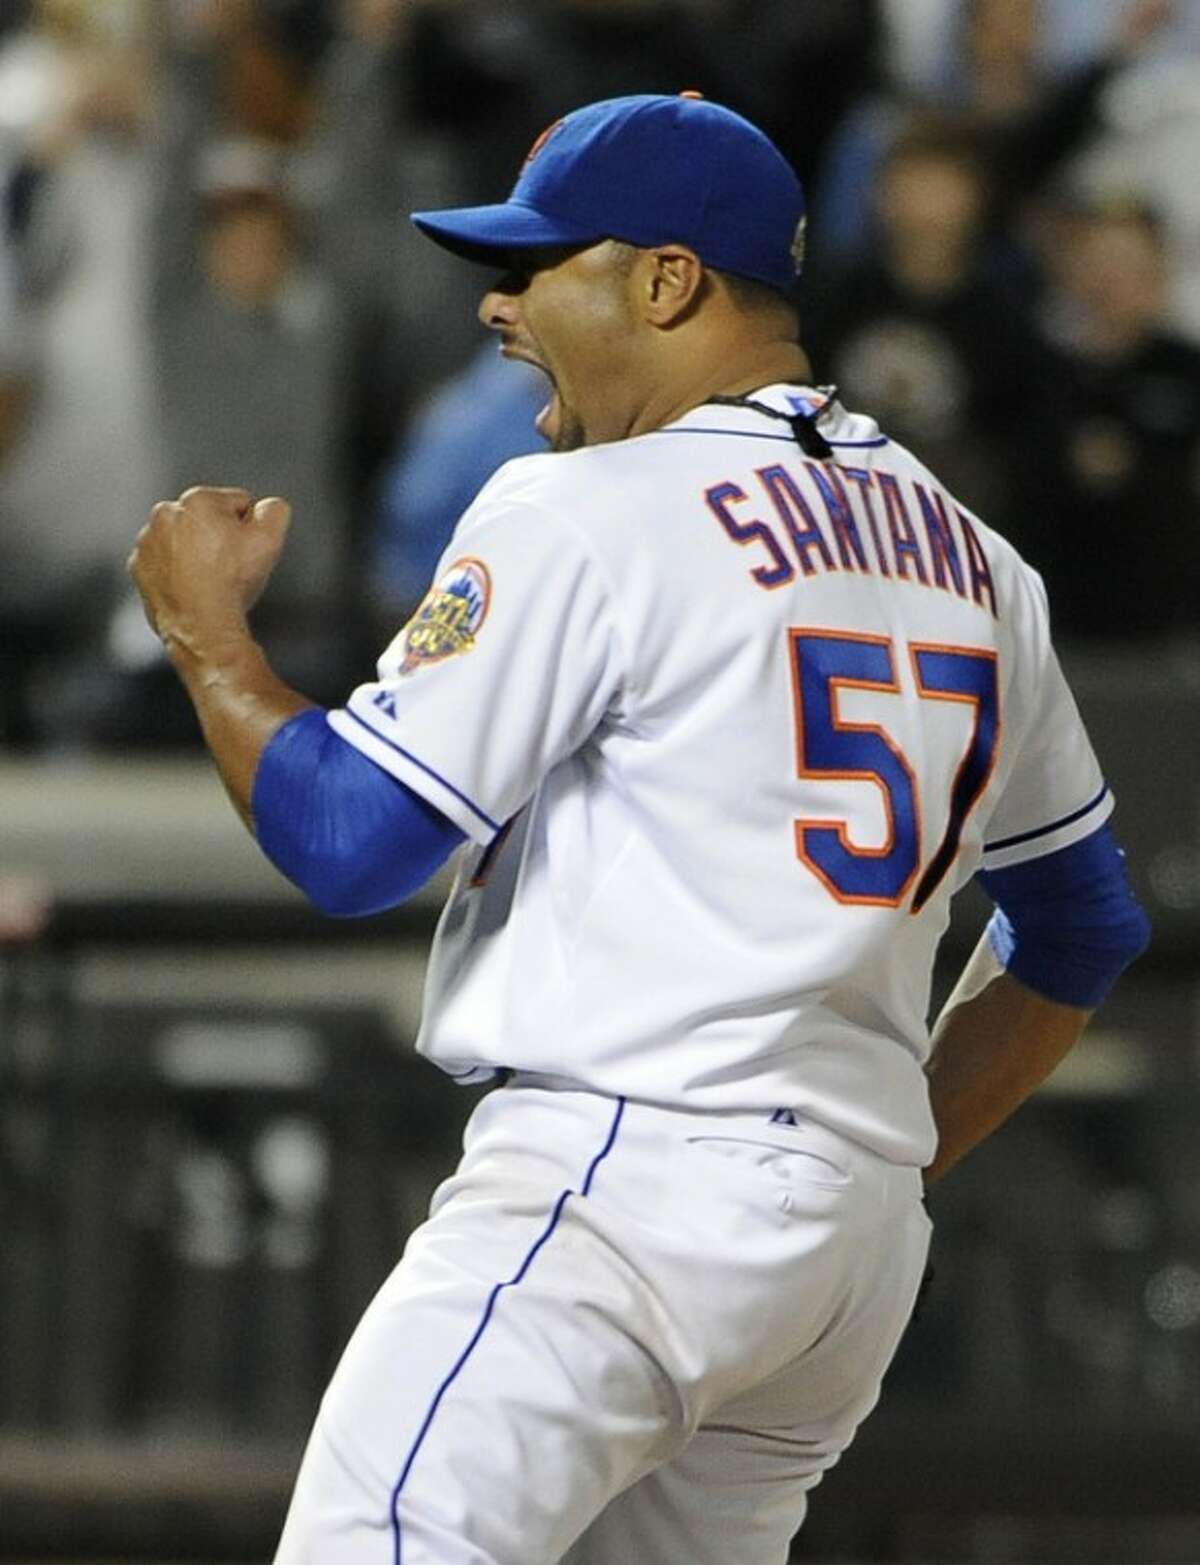 New York Mets starting pitcher Johan Santana (57) celebrates his no-hitter against the St. Louis Cardinals at the end of a baseball game on Friday, June 1, 2012, at Citi Field in New York. The Mets won 8-0. (AP Photo/Kathy Kmonicek)